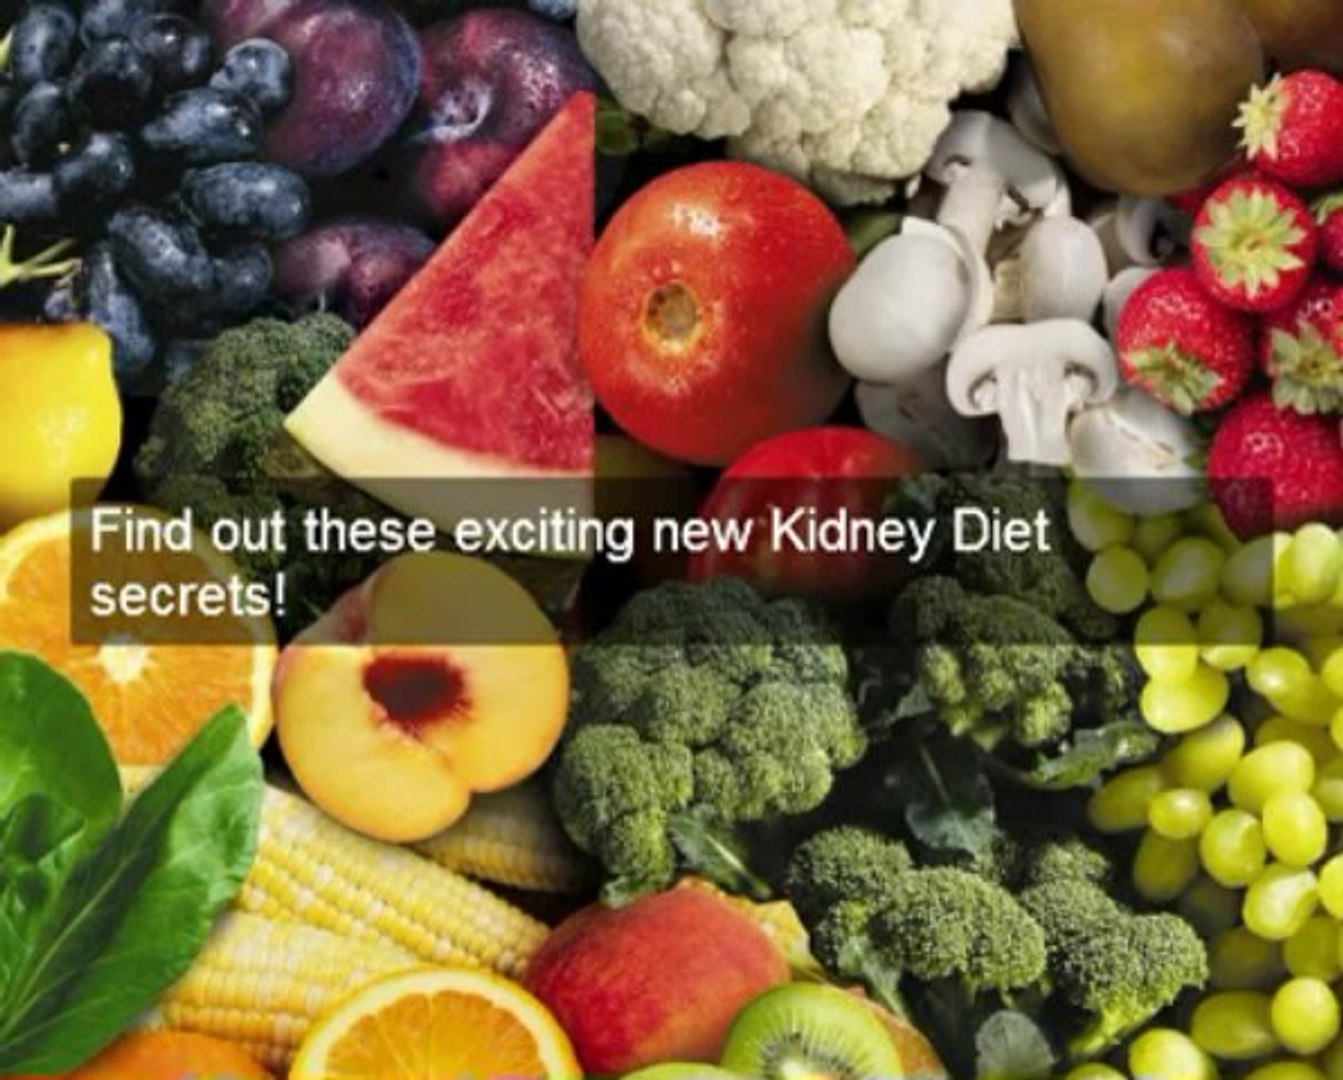 Need a renal calculi diet? Try kidney diet secrets for kidney disease diet plan & renal calculi